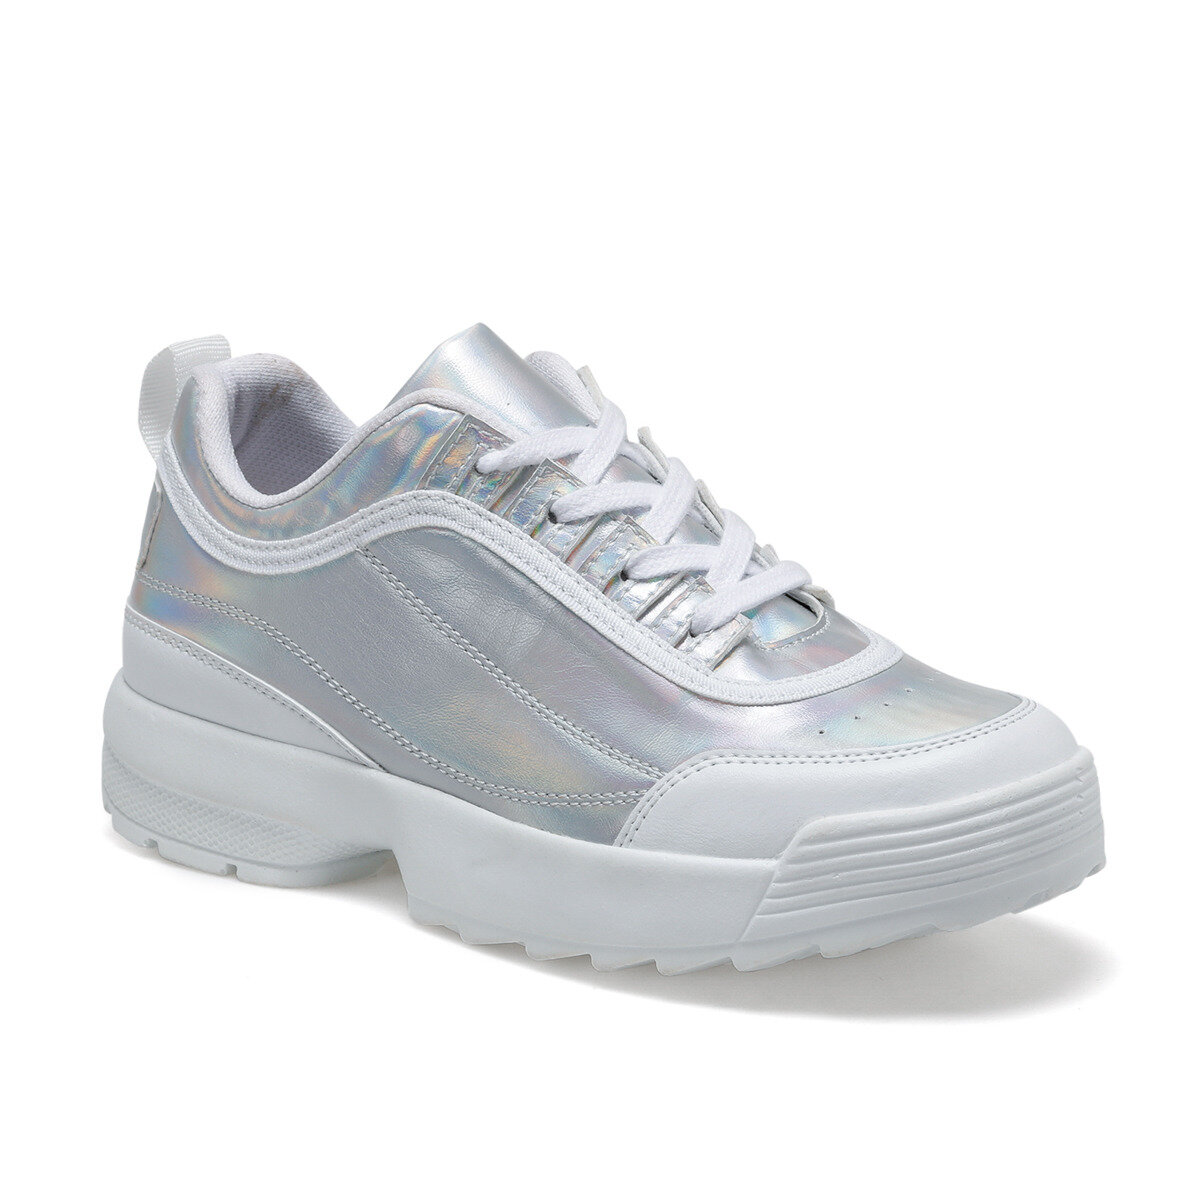 FLO 20S-335 Silver Women 'S Sneaker Shoes BUTIGO